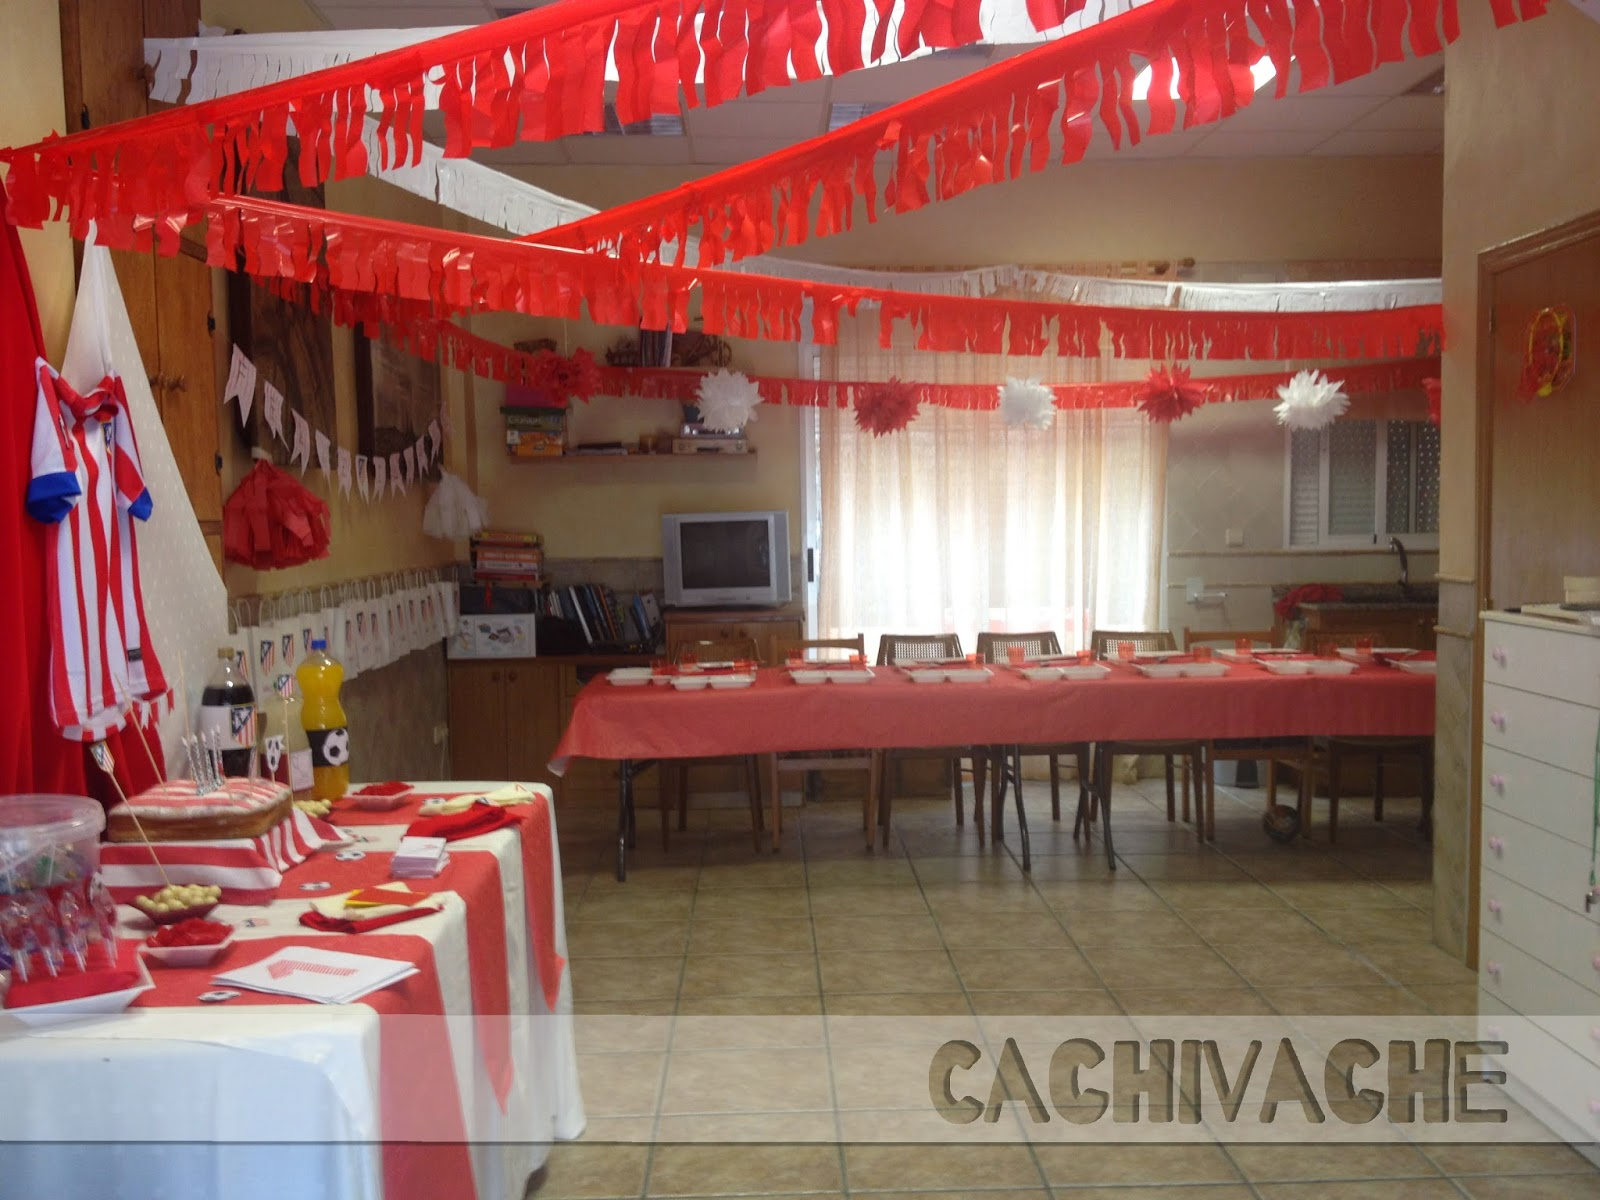 Fiesta de cumplea os atletico de madrid - Decoracion madrid ...